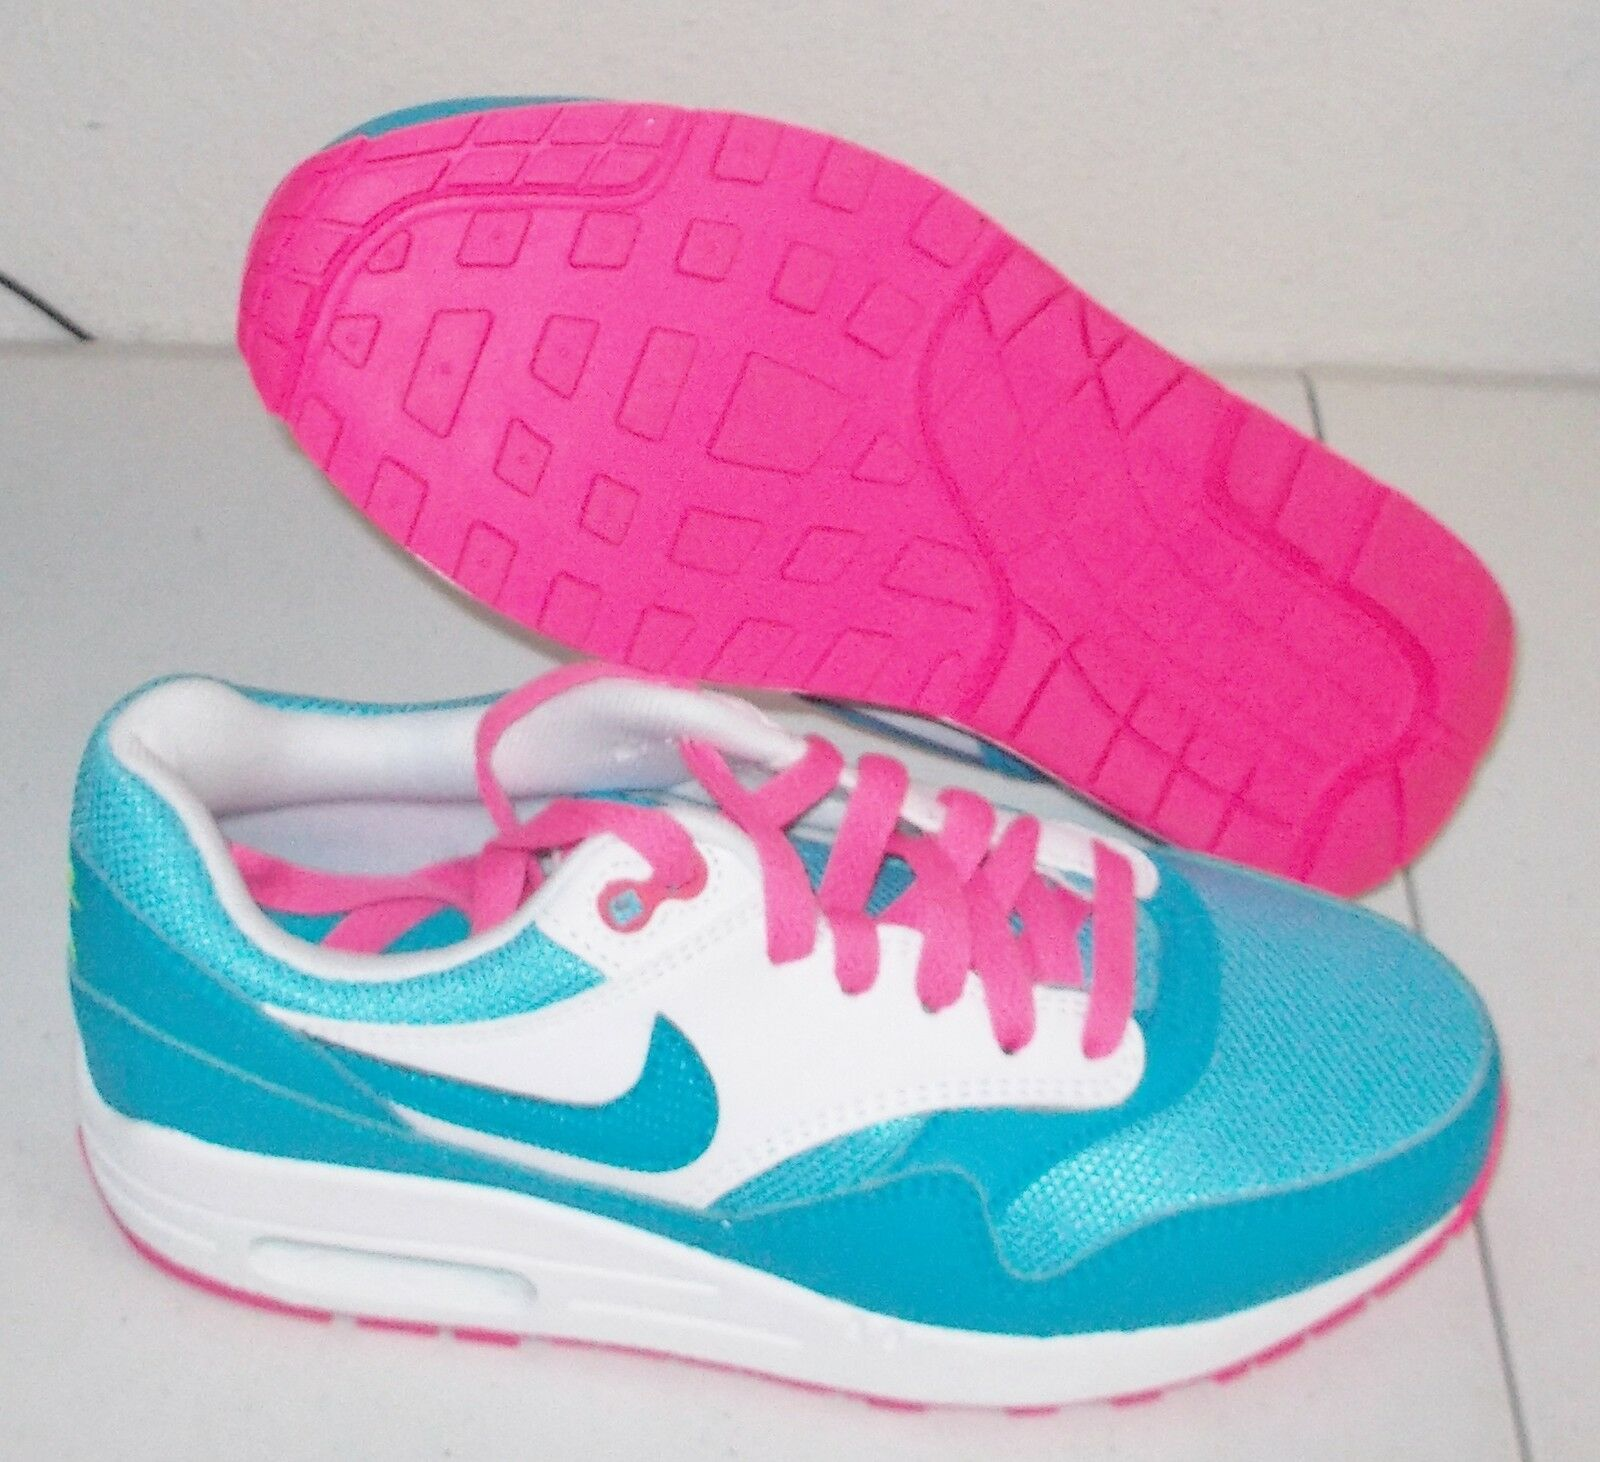 Nuove nike air max 1 donne (5y) clearwater rosa pow classico corsa limitata